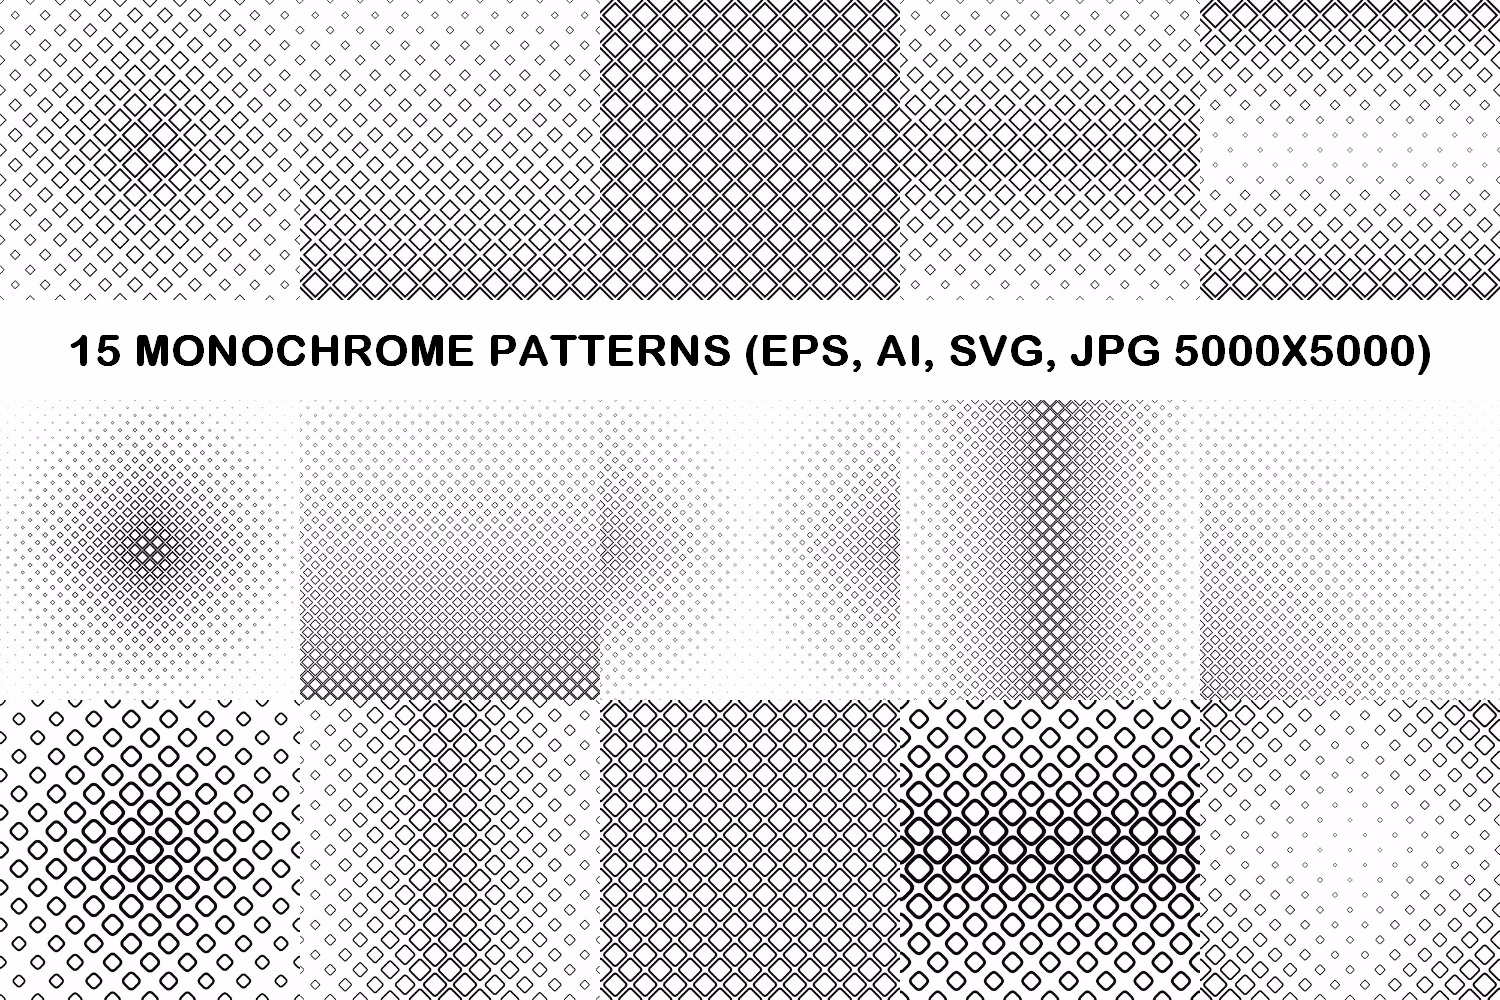 75 Monochrome Geometrical Patterns AI, EPS, JPG 5000x5000 example image 2